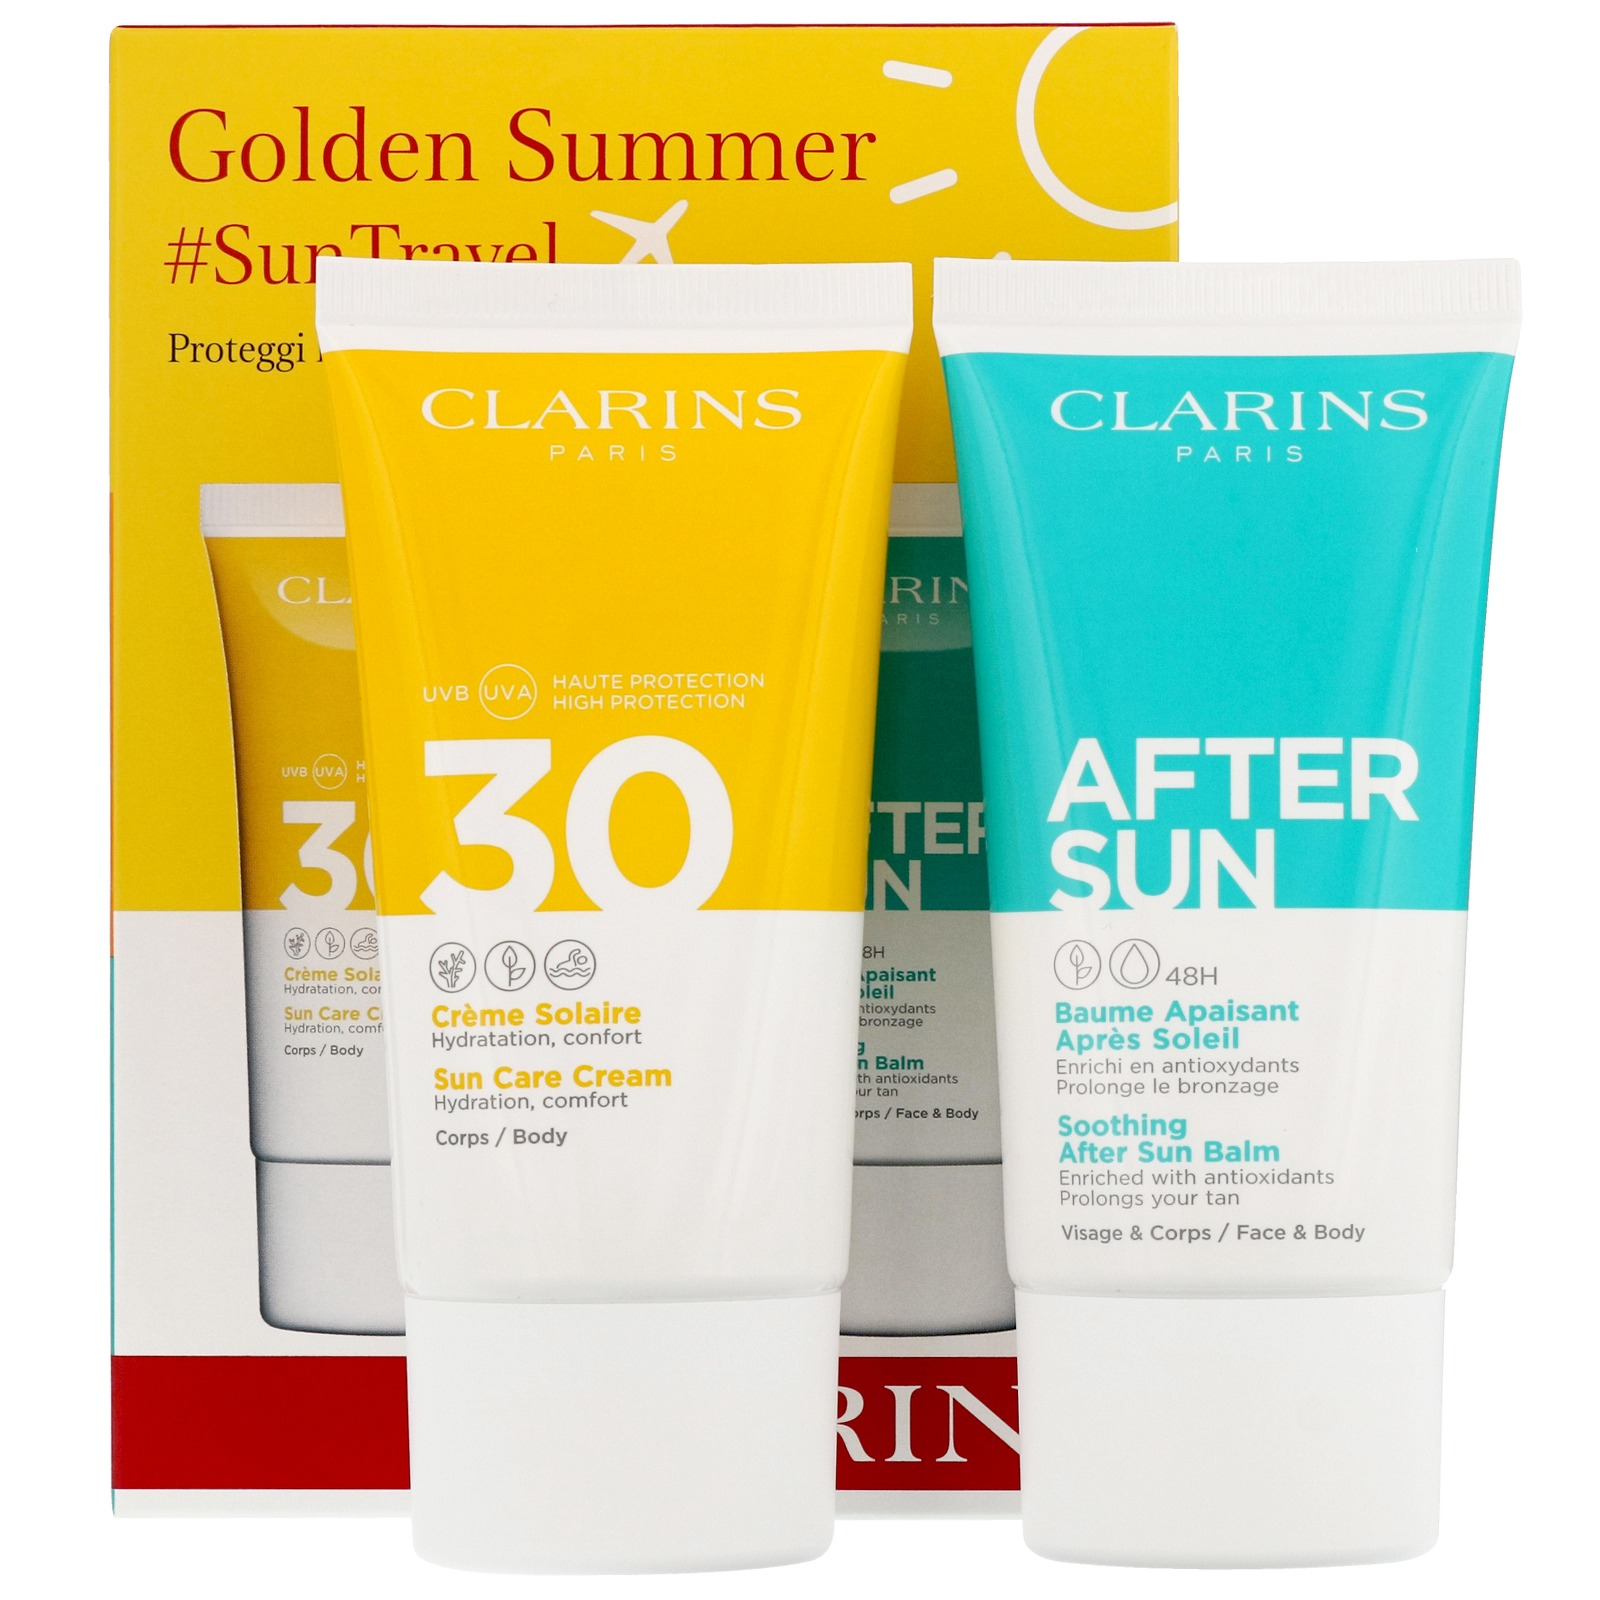 Clarins Gifts & Sets Golden Summer Travel Duo